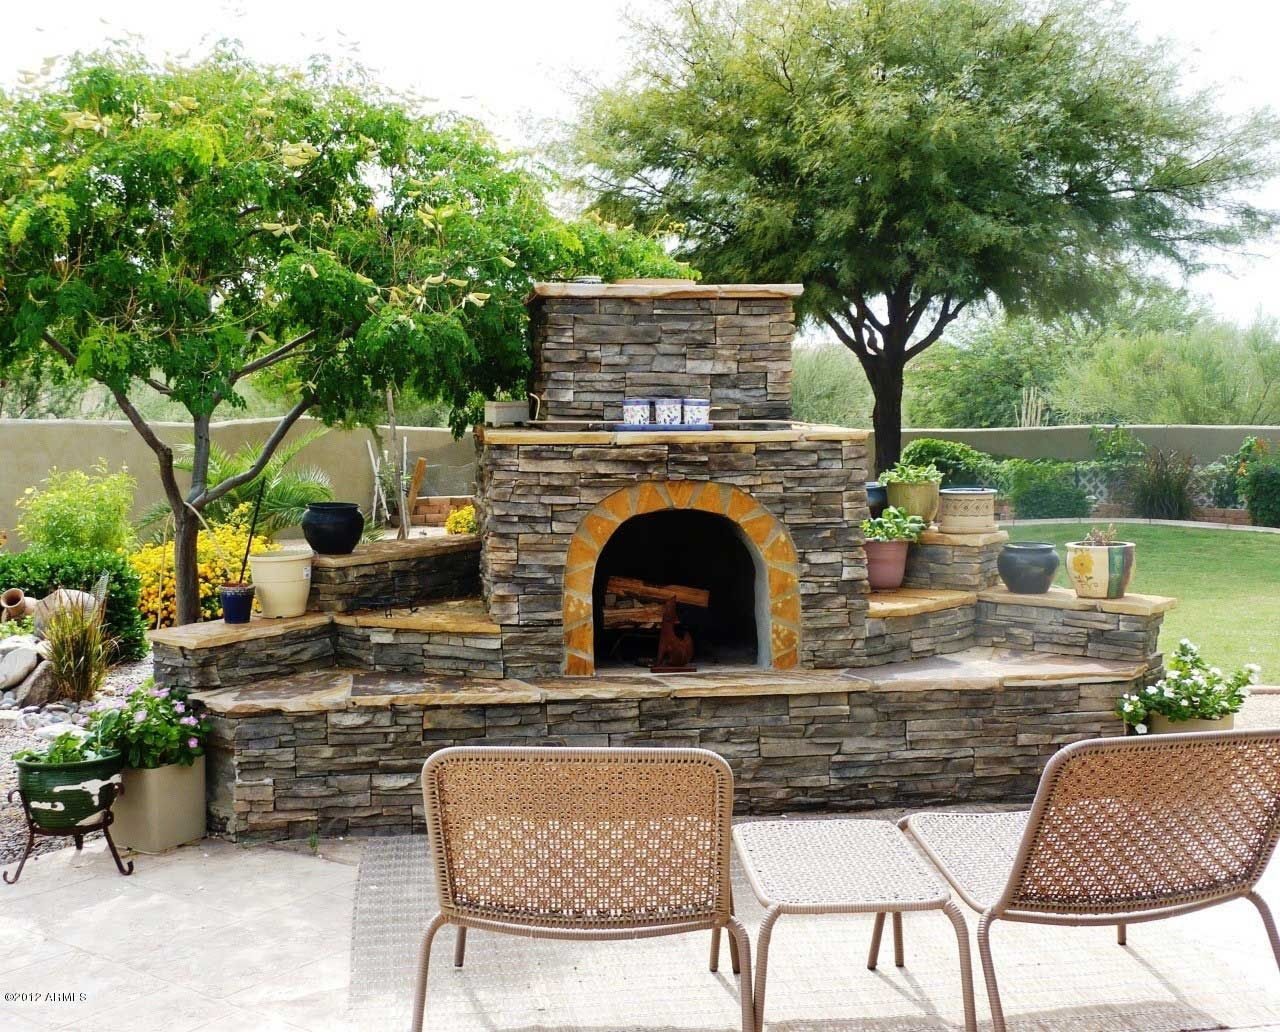 Captivating Creative Ideas Outdoor Fireplace Designs | Outdoor Design And Ideas Photo Gallery